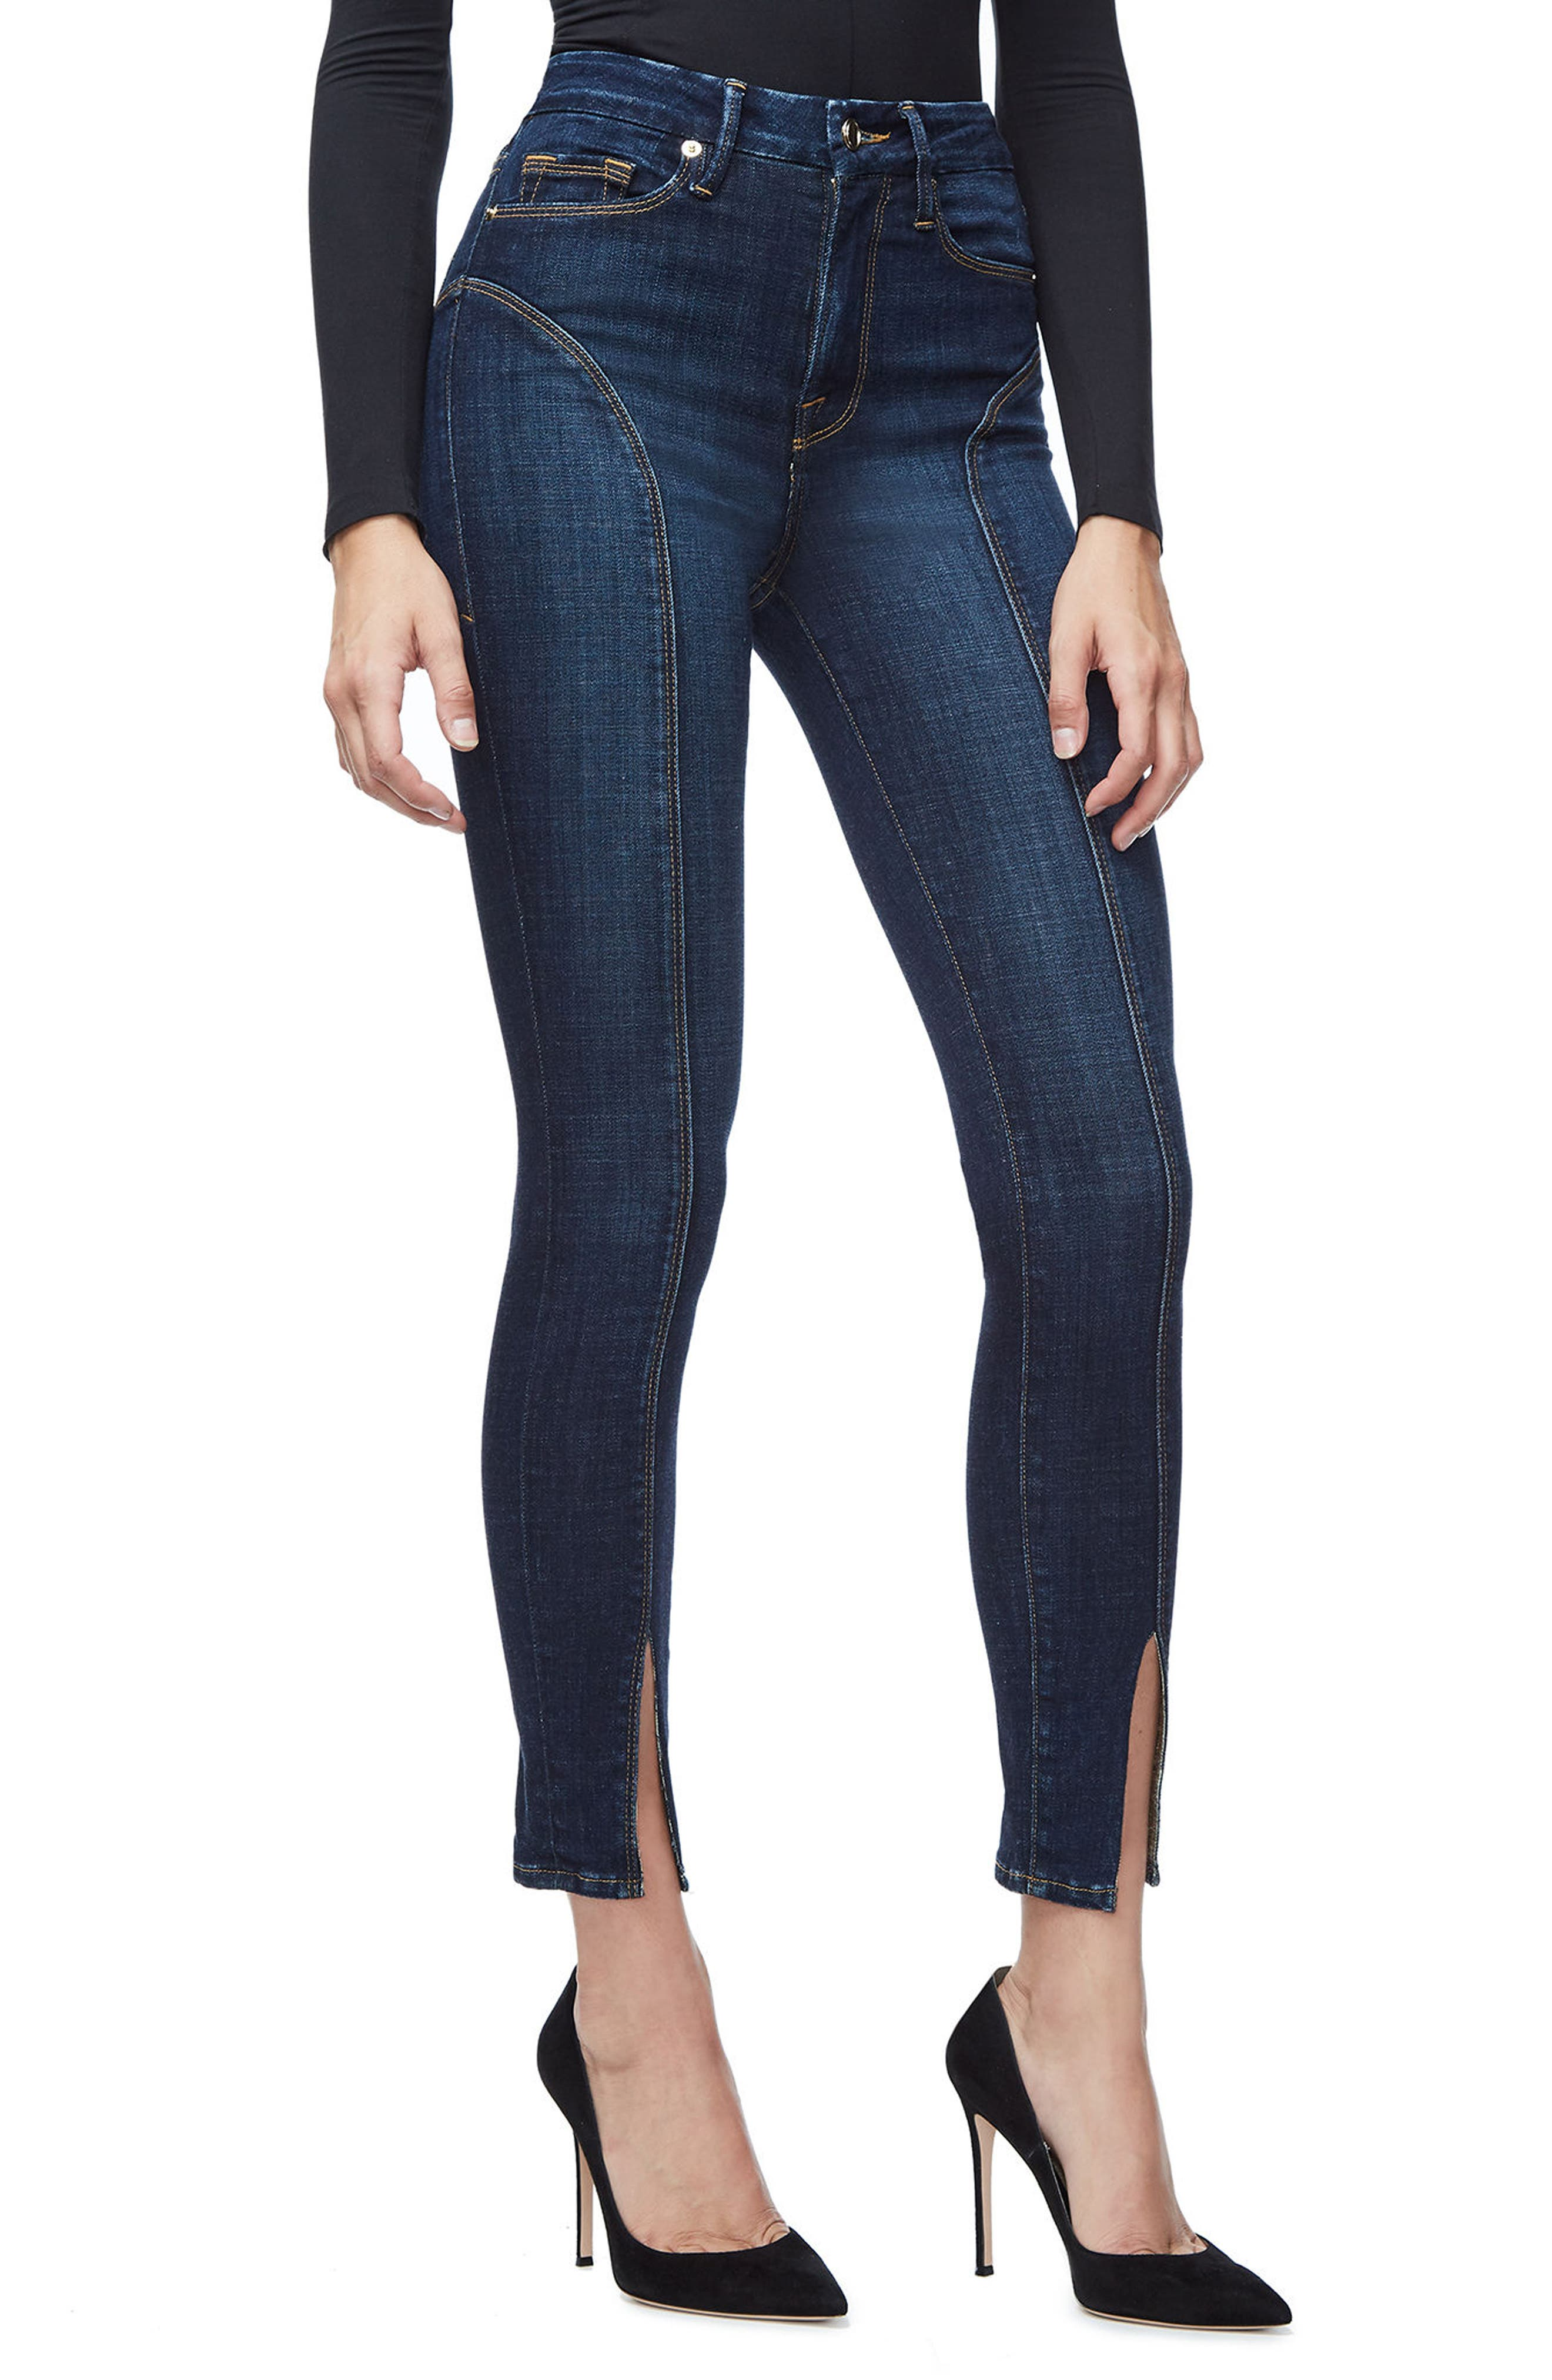 Alternate Image 2  - Good American Good Legs Crop Skinny Jeans (Blue 025) (Regular & Plus Size)